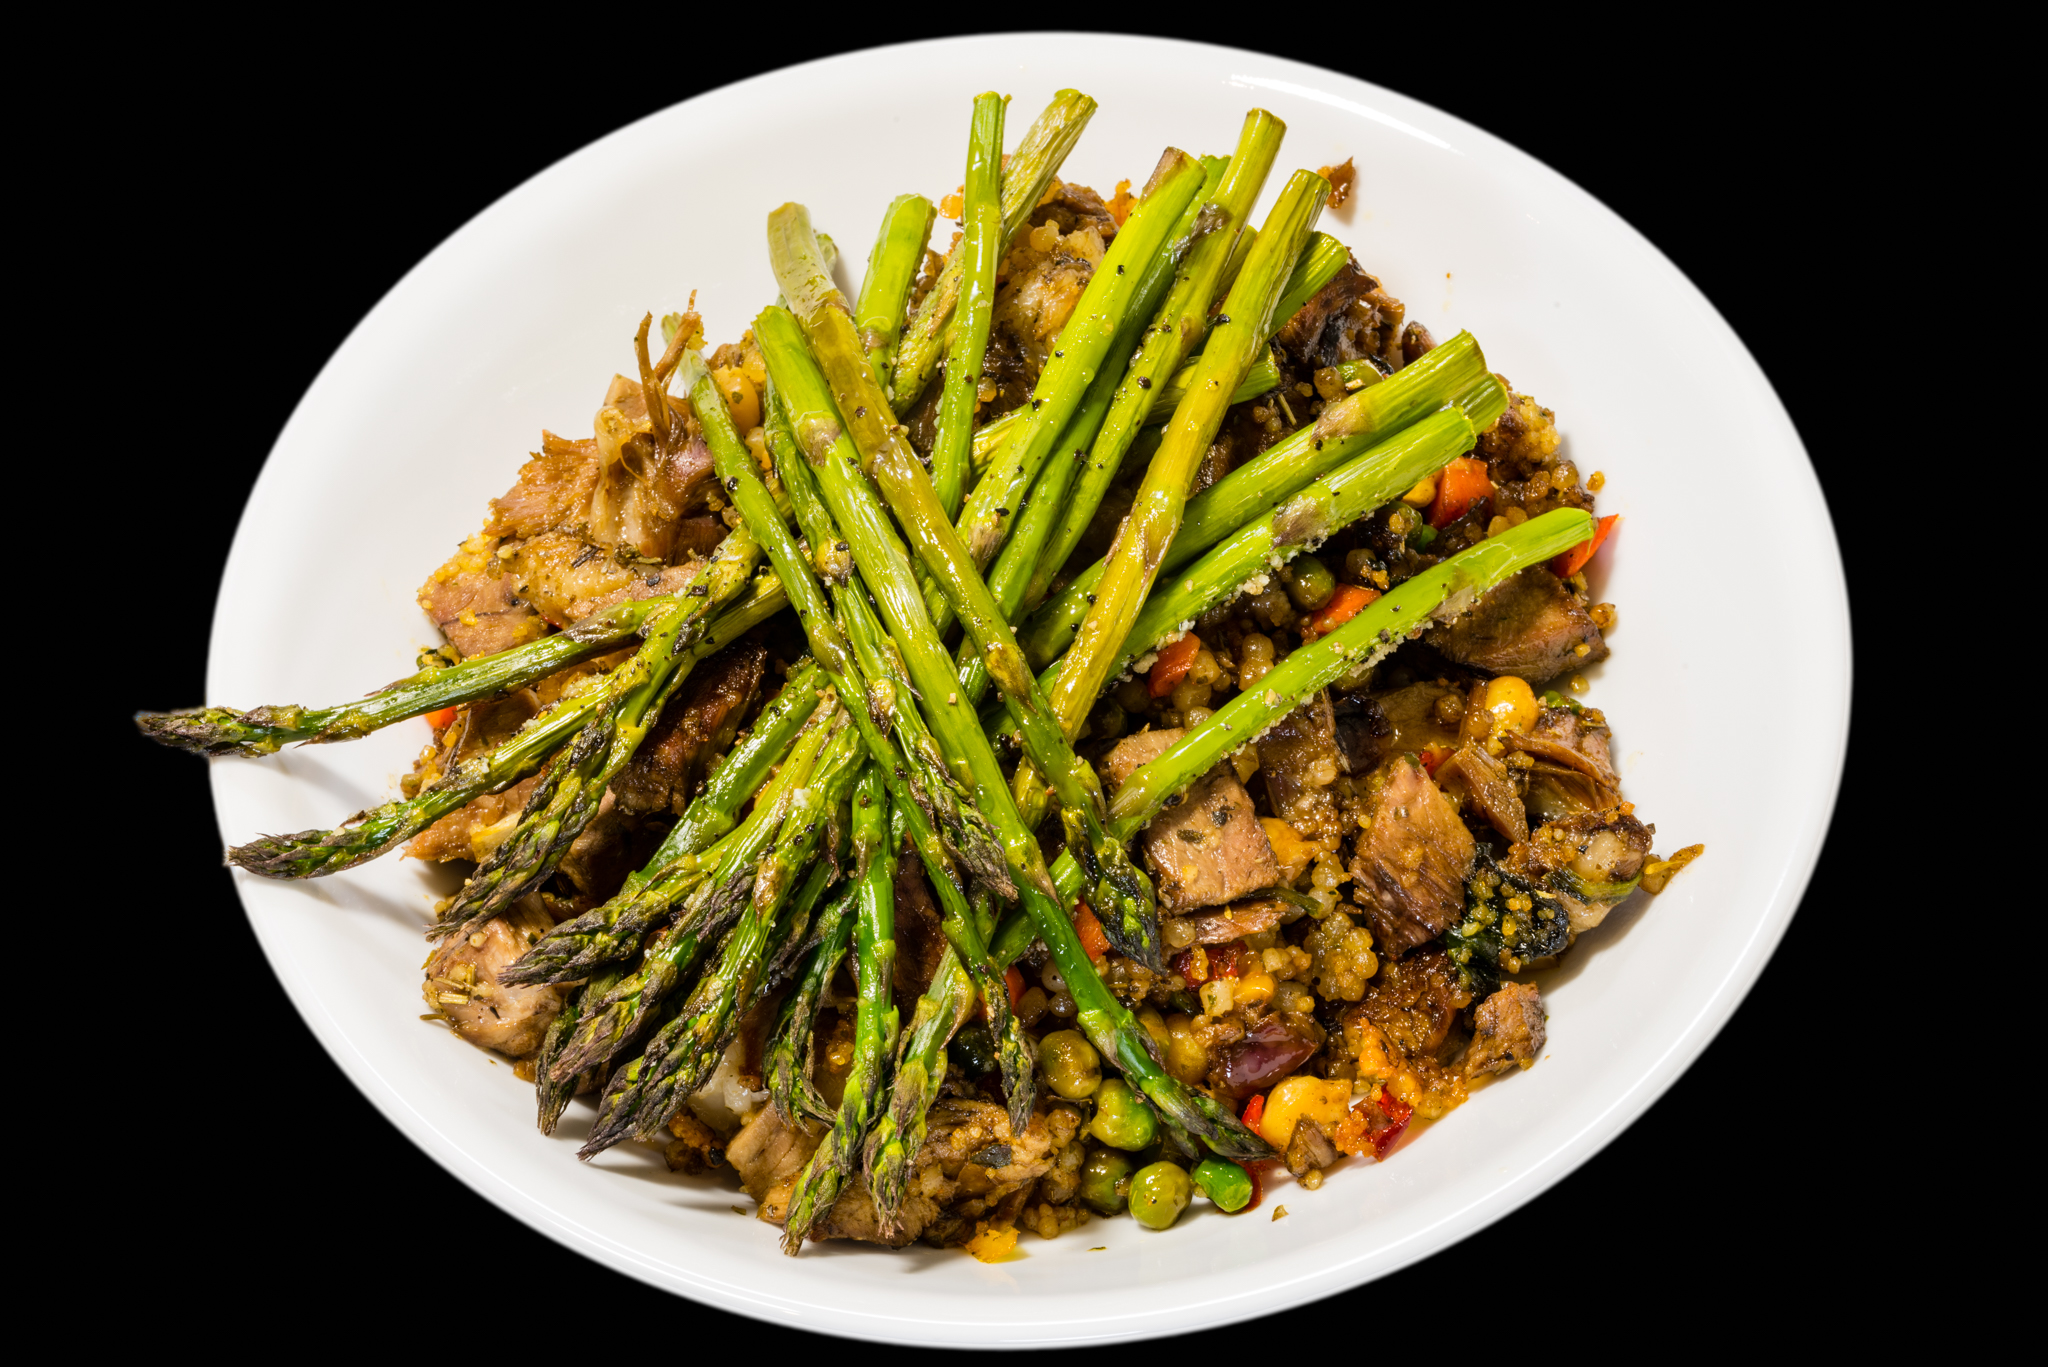 Leftover lamb shoulder with pearl barley couscous and roasted Australian asparagus Gary Lum